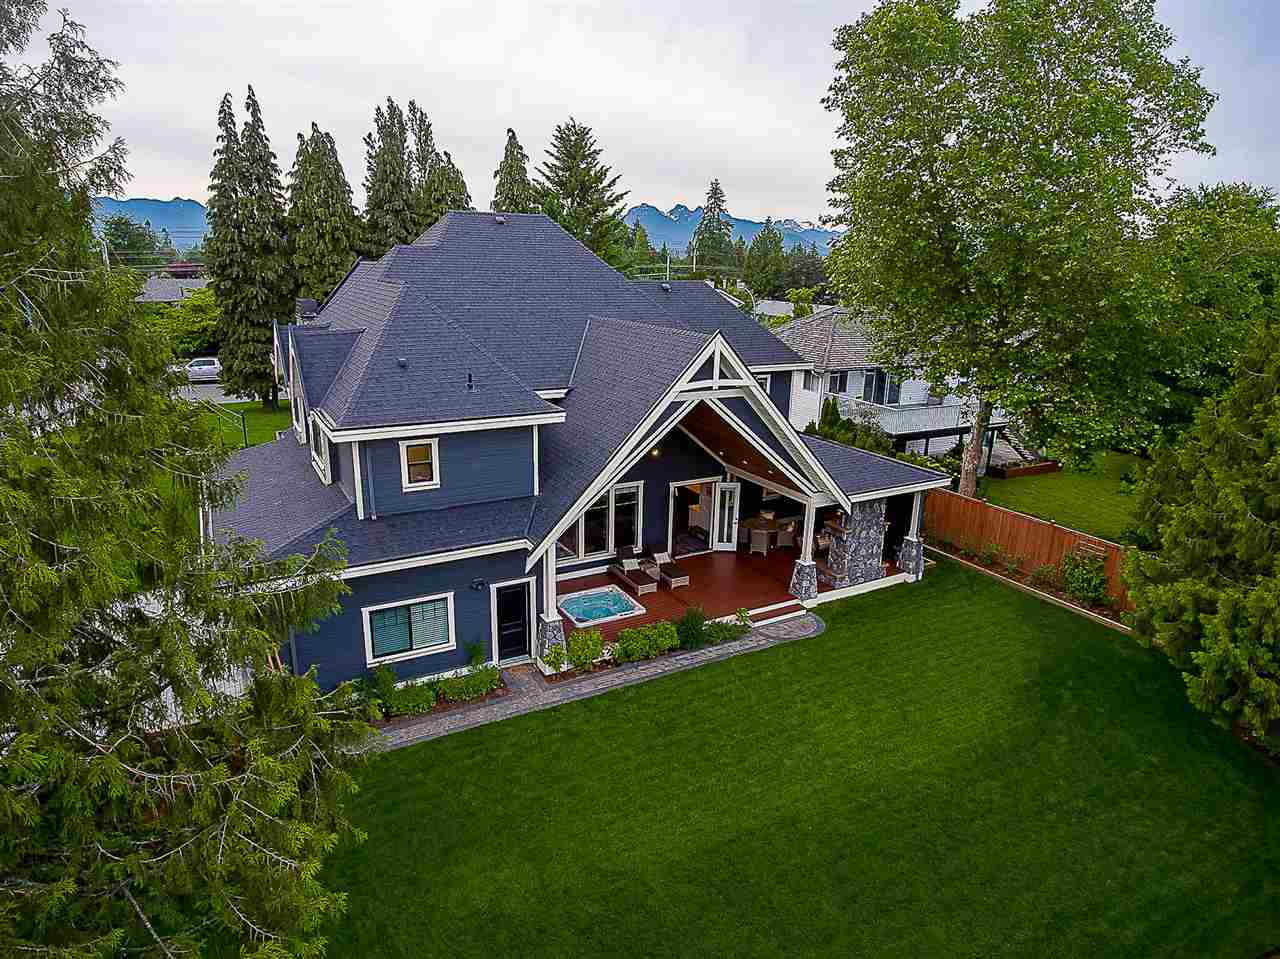 Photo 17: Photos: 20462 94B Avenue in Langley: Walnut Grove House for sale : MLS® # R2236268